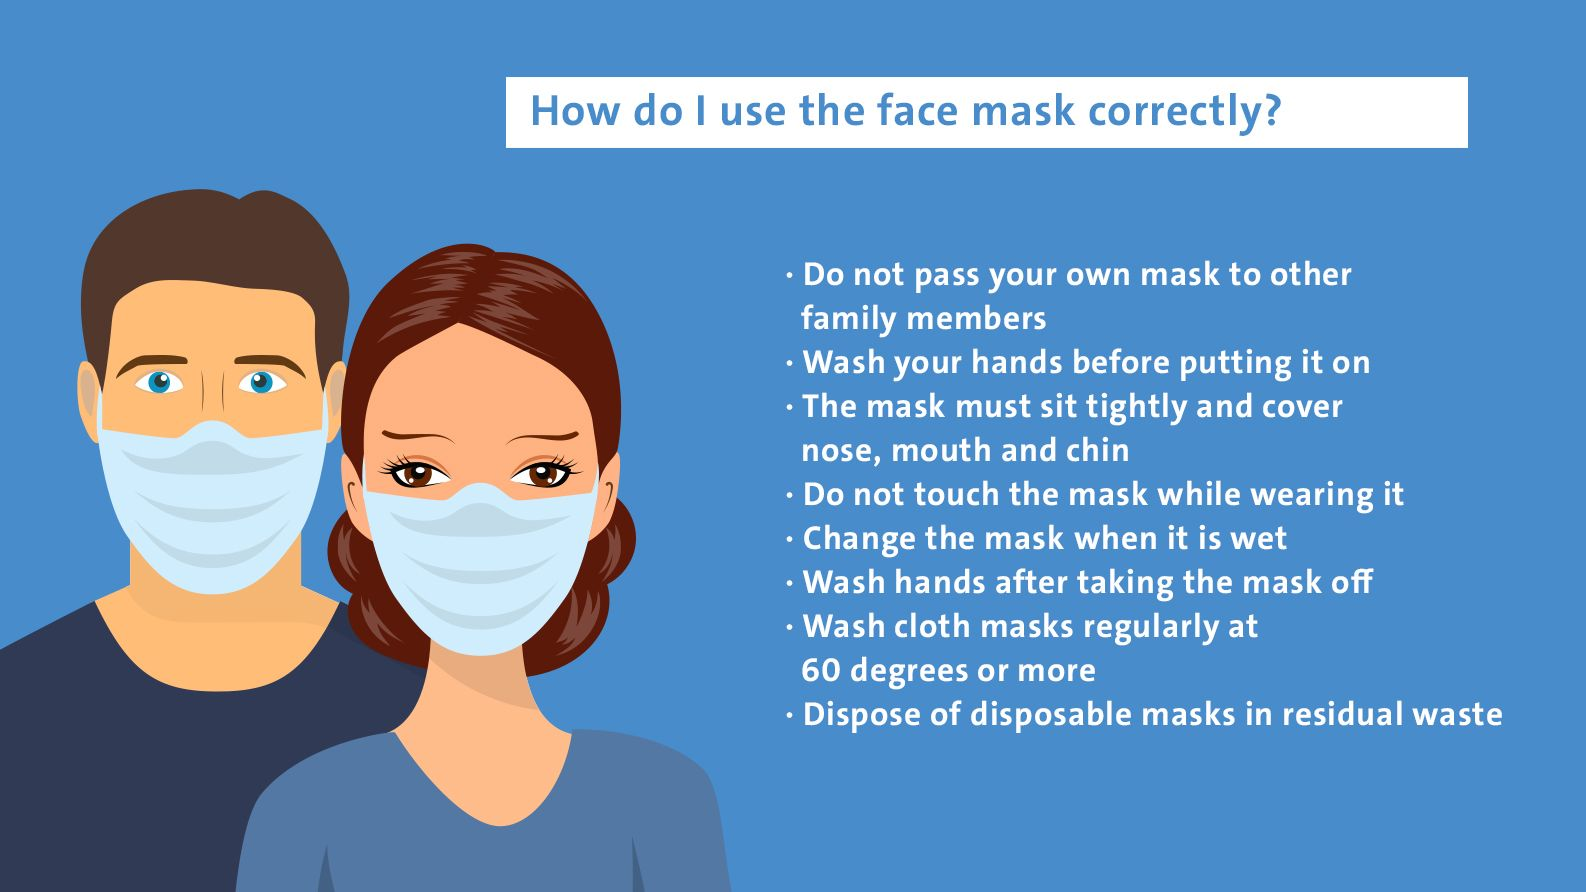 How do I use the face mask correctly? Do not pass your own mask to other family members Wash your hands before putting it on Do not touch the mask while wearing it Change the mask when it is wet Wash hands after taking the mask off Wash cloth masks regularly at 60 degrees or more Dispose of disposable masks in residual waste